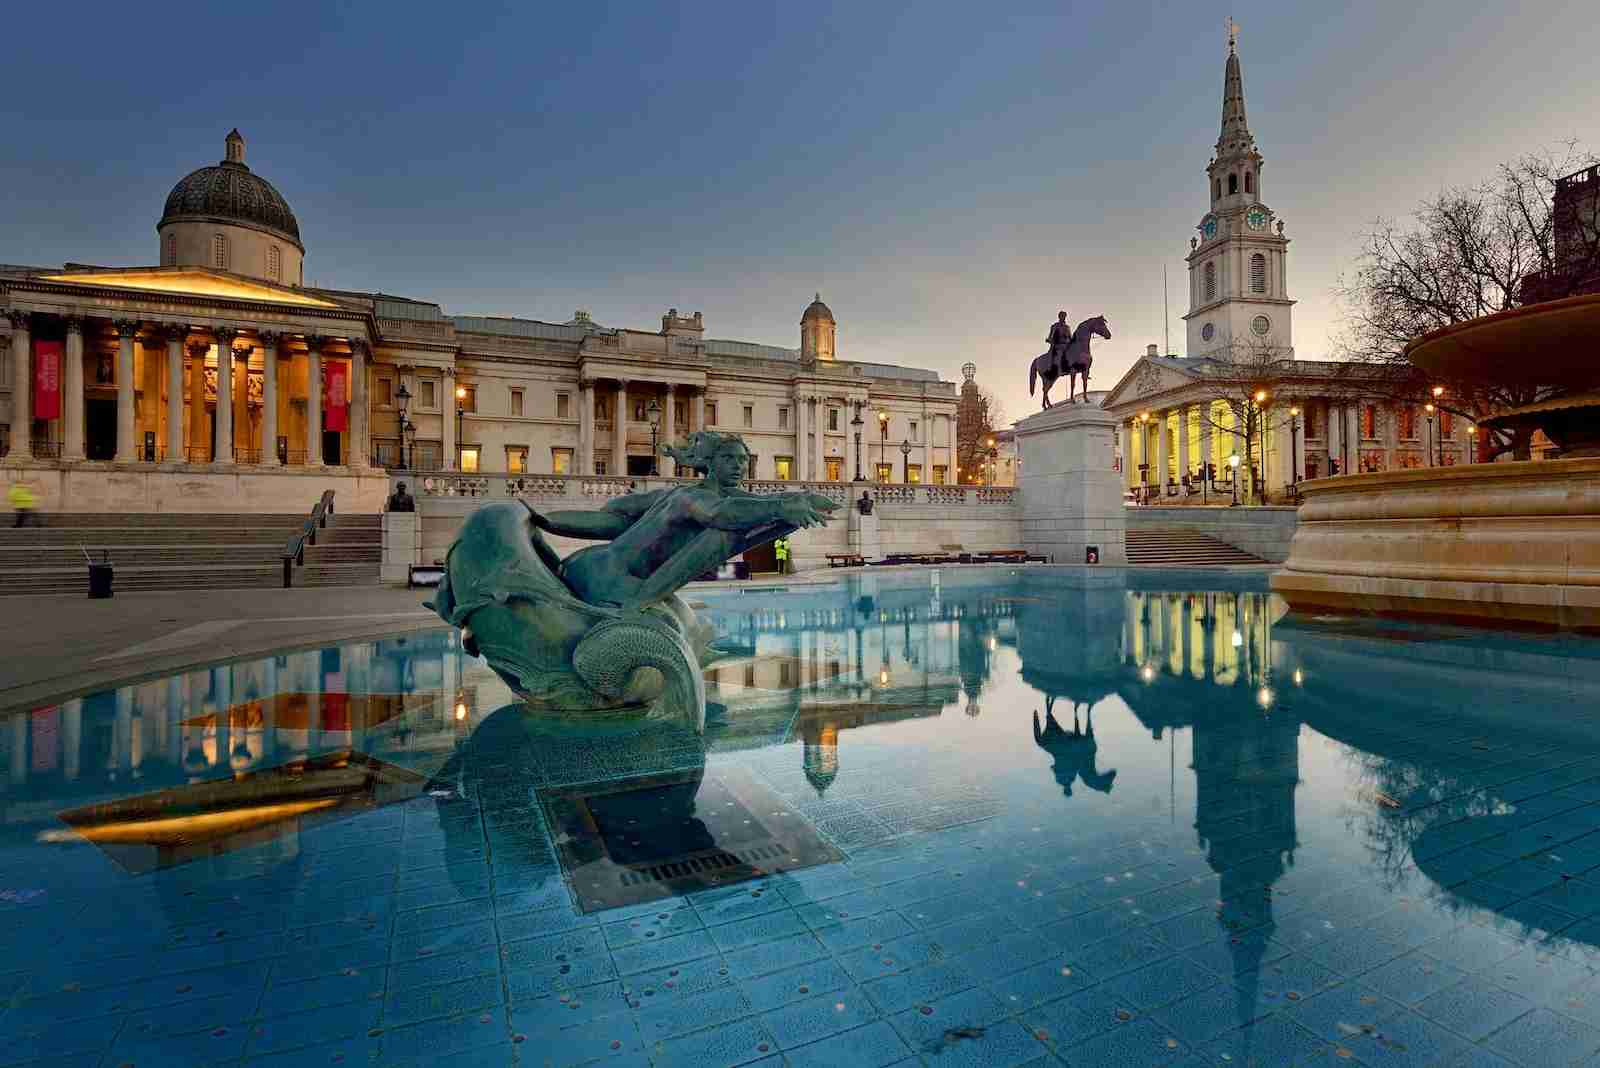 Trafalgar Square with The National Gallery building. (Photo by Vladimir Zakharov/Getty Images)